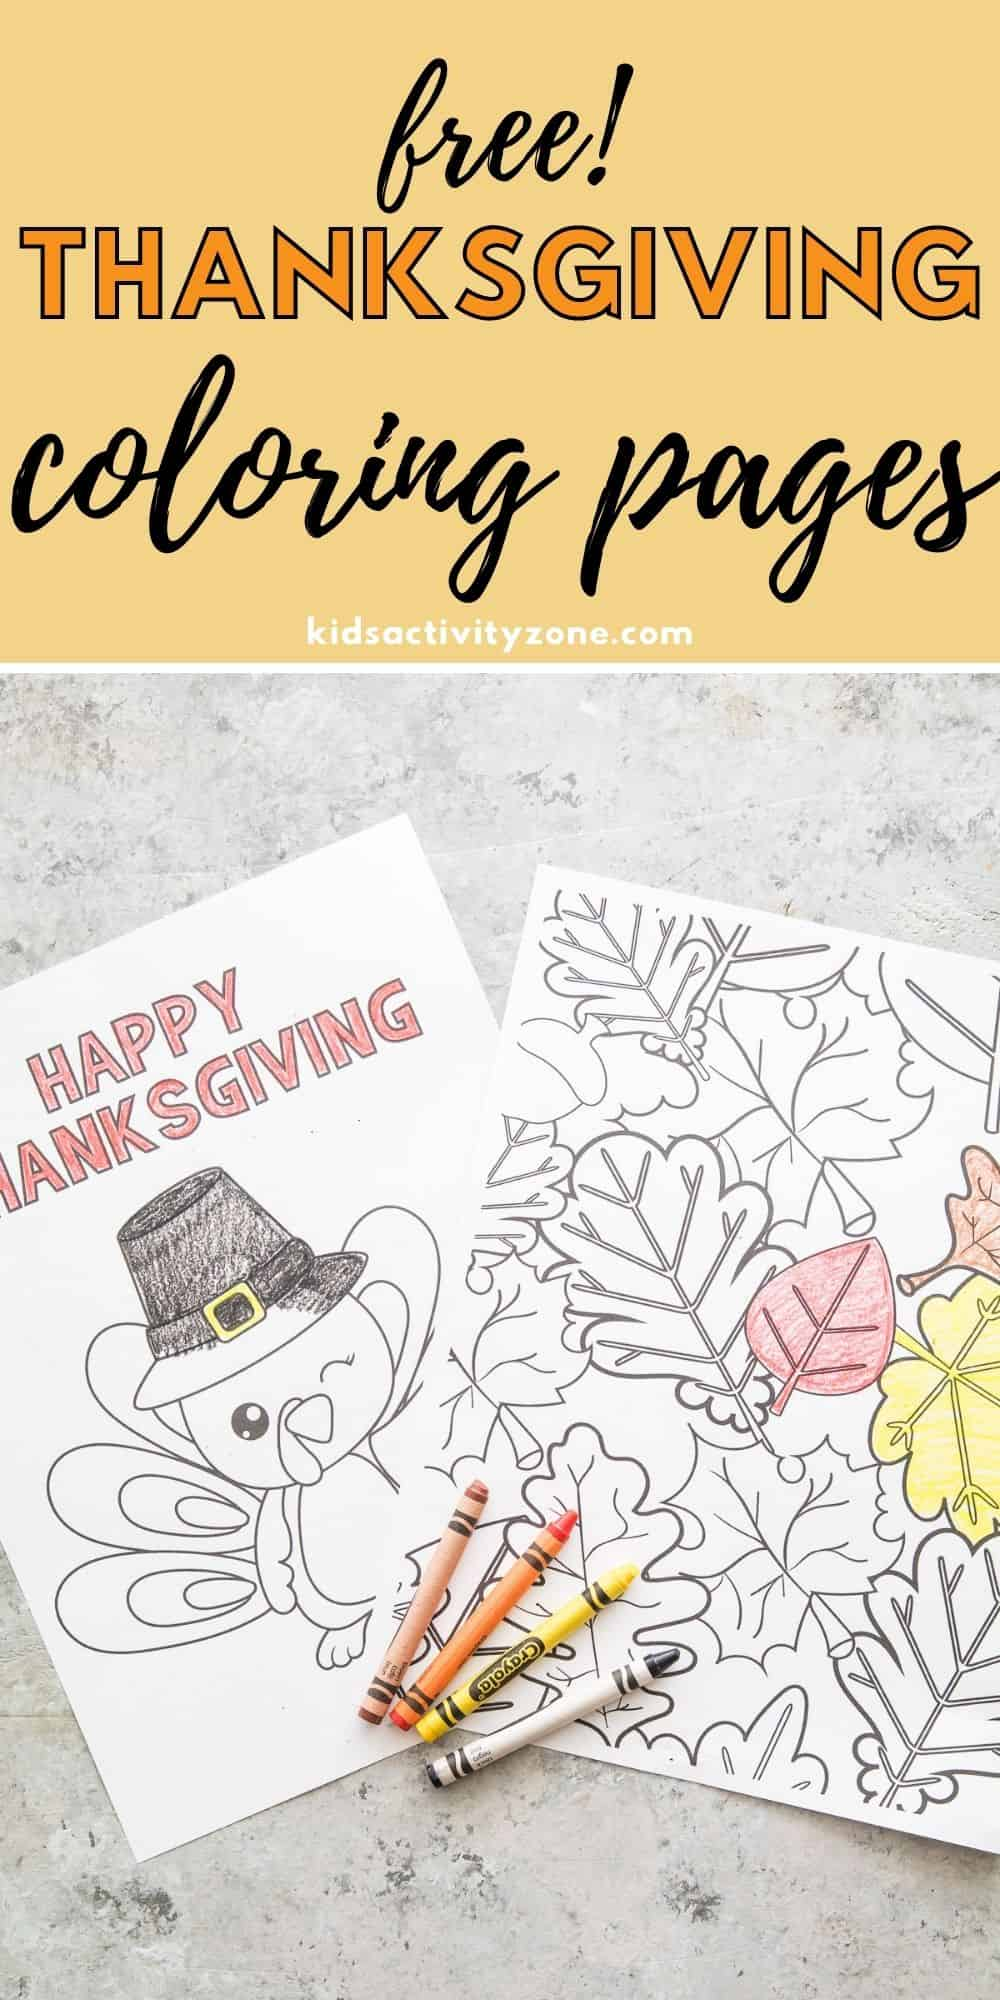 This is the perfect quick and easy activity for kids and adults during the holidays. These Free Printable Thanksgiving Coloring Pages are great for parties and holiday meals.